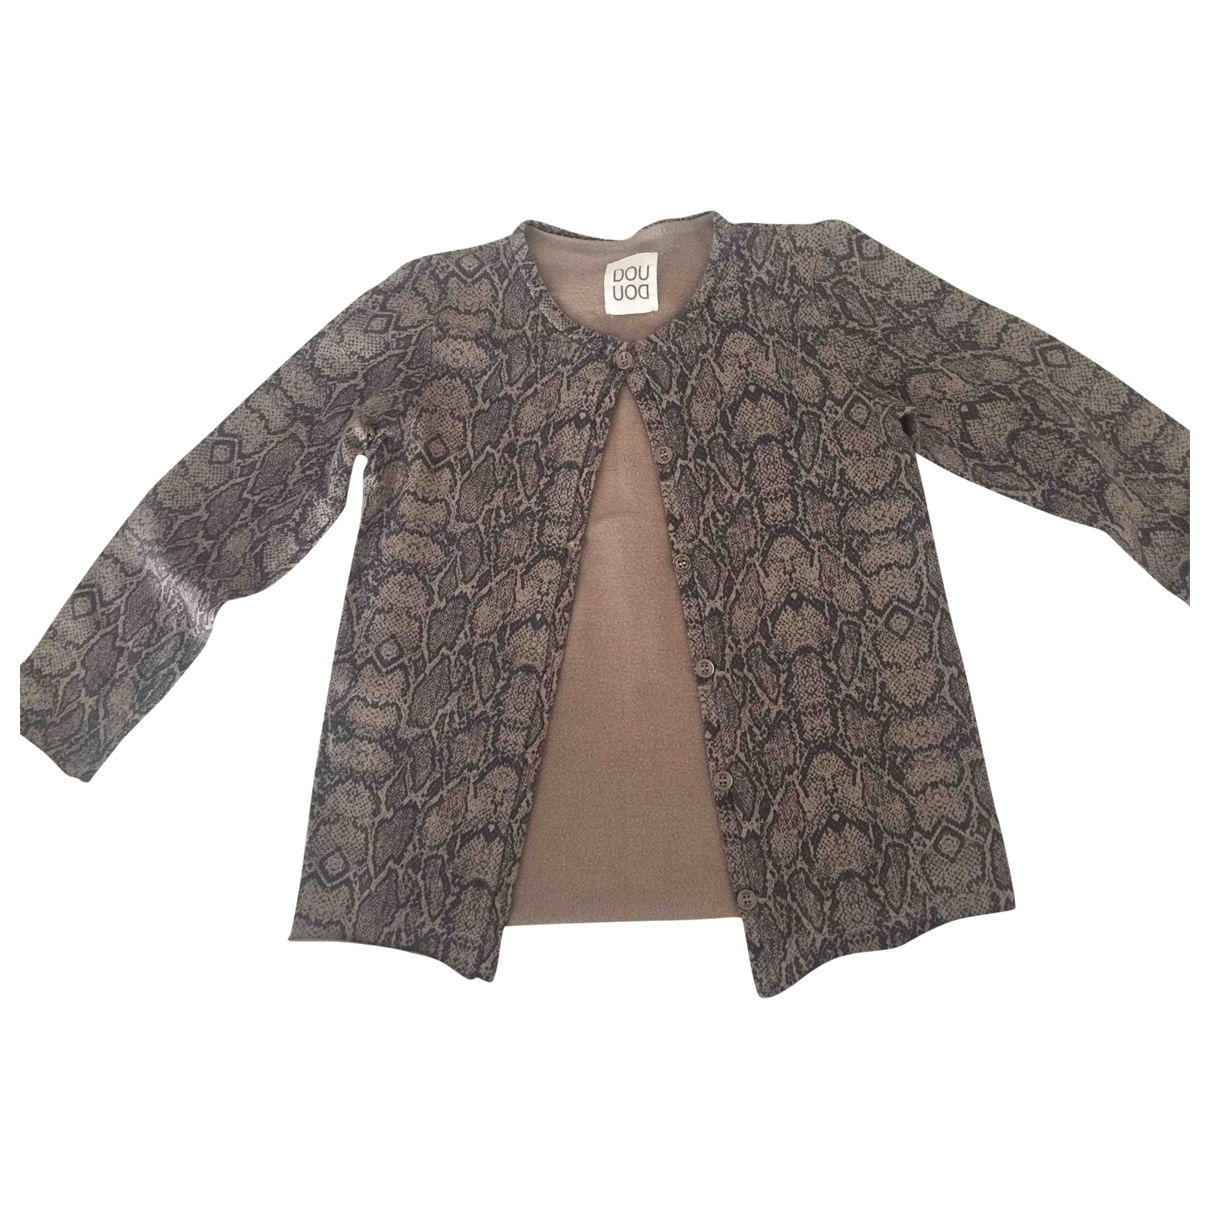 Douuod \N Brown Cotton Knitwear for Kids 8 years - up to 128cm FR